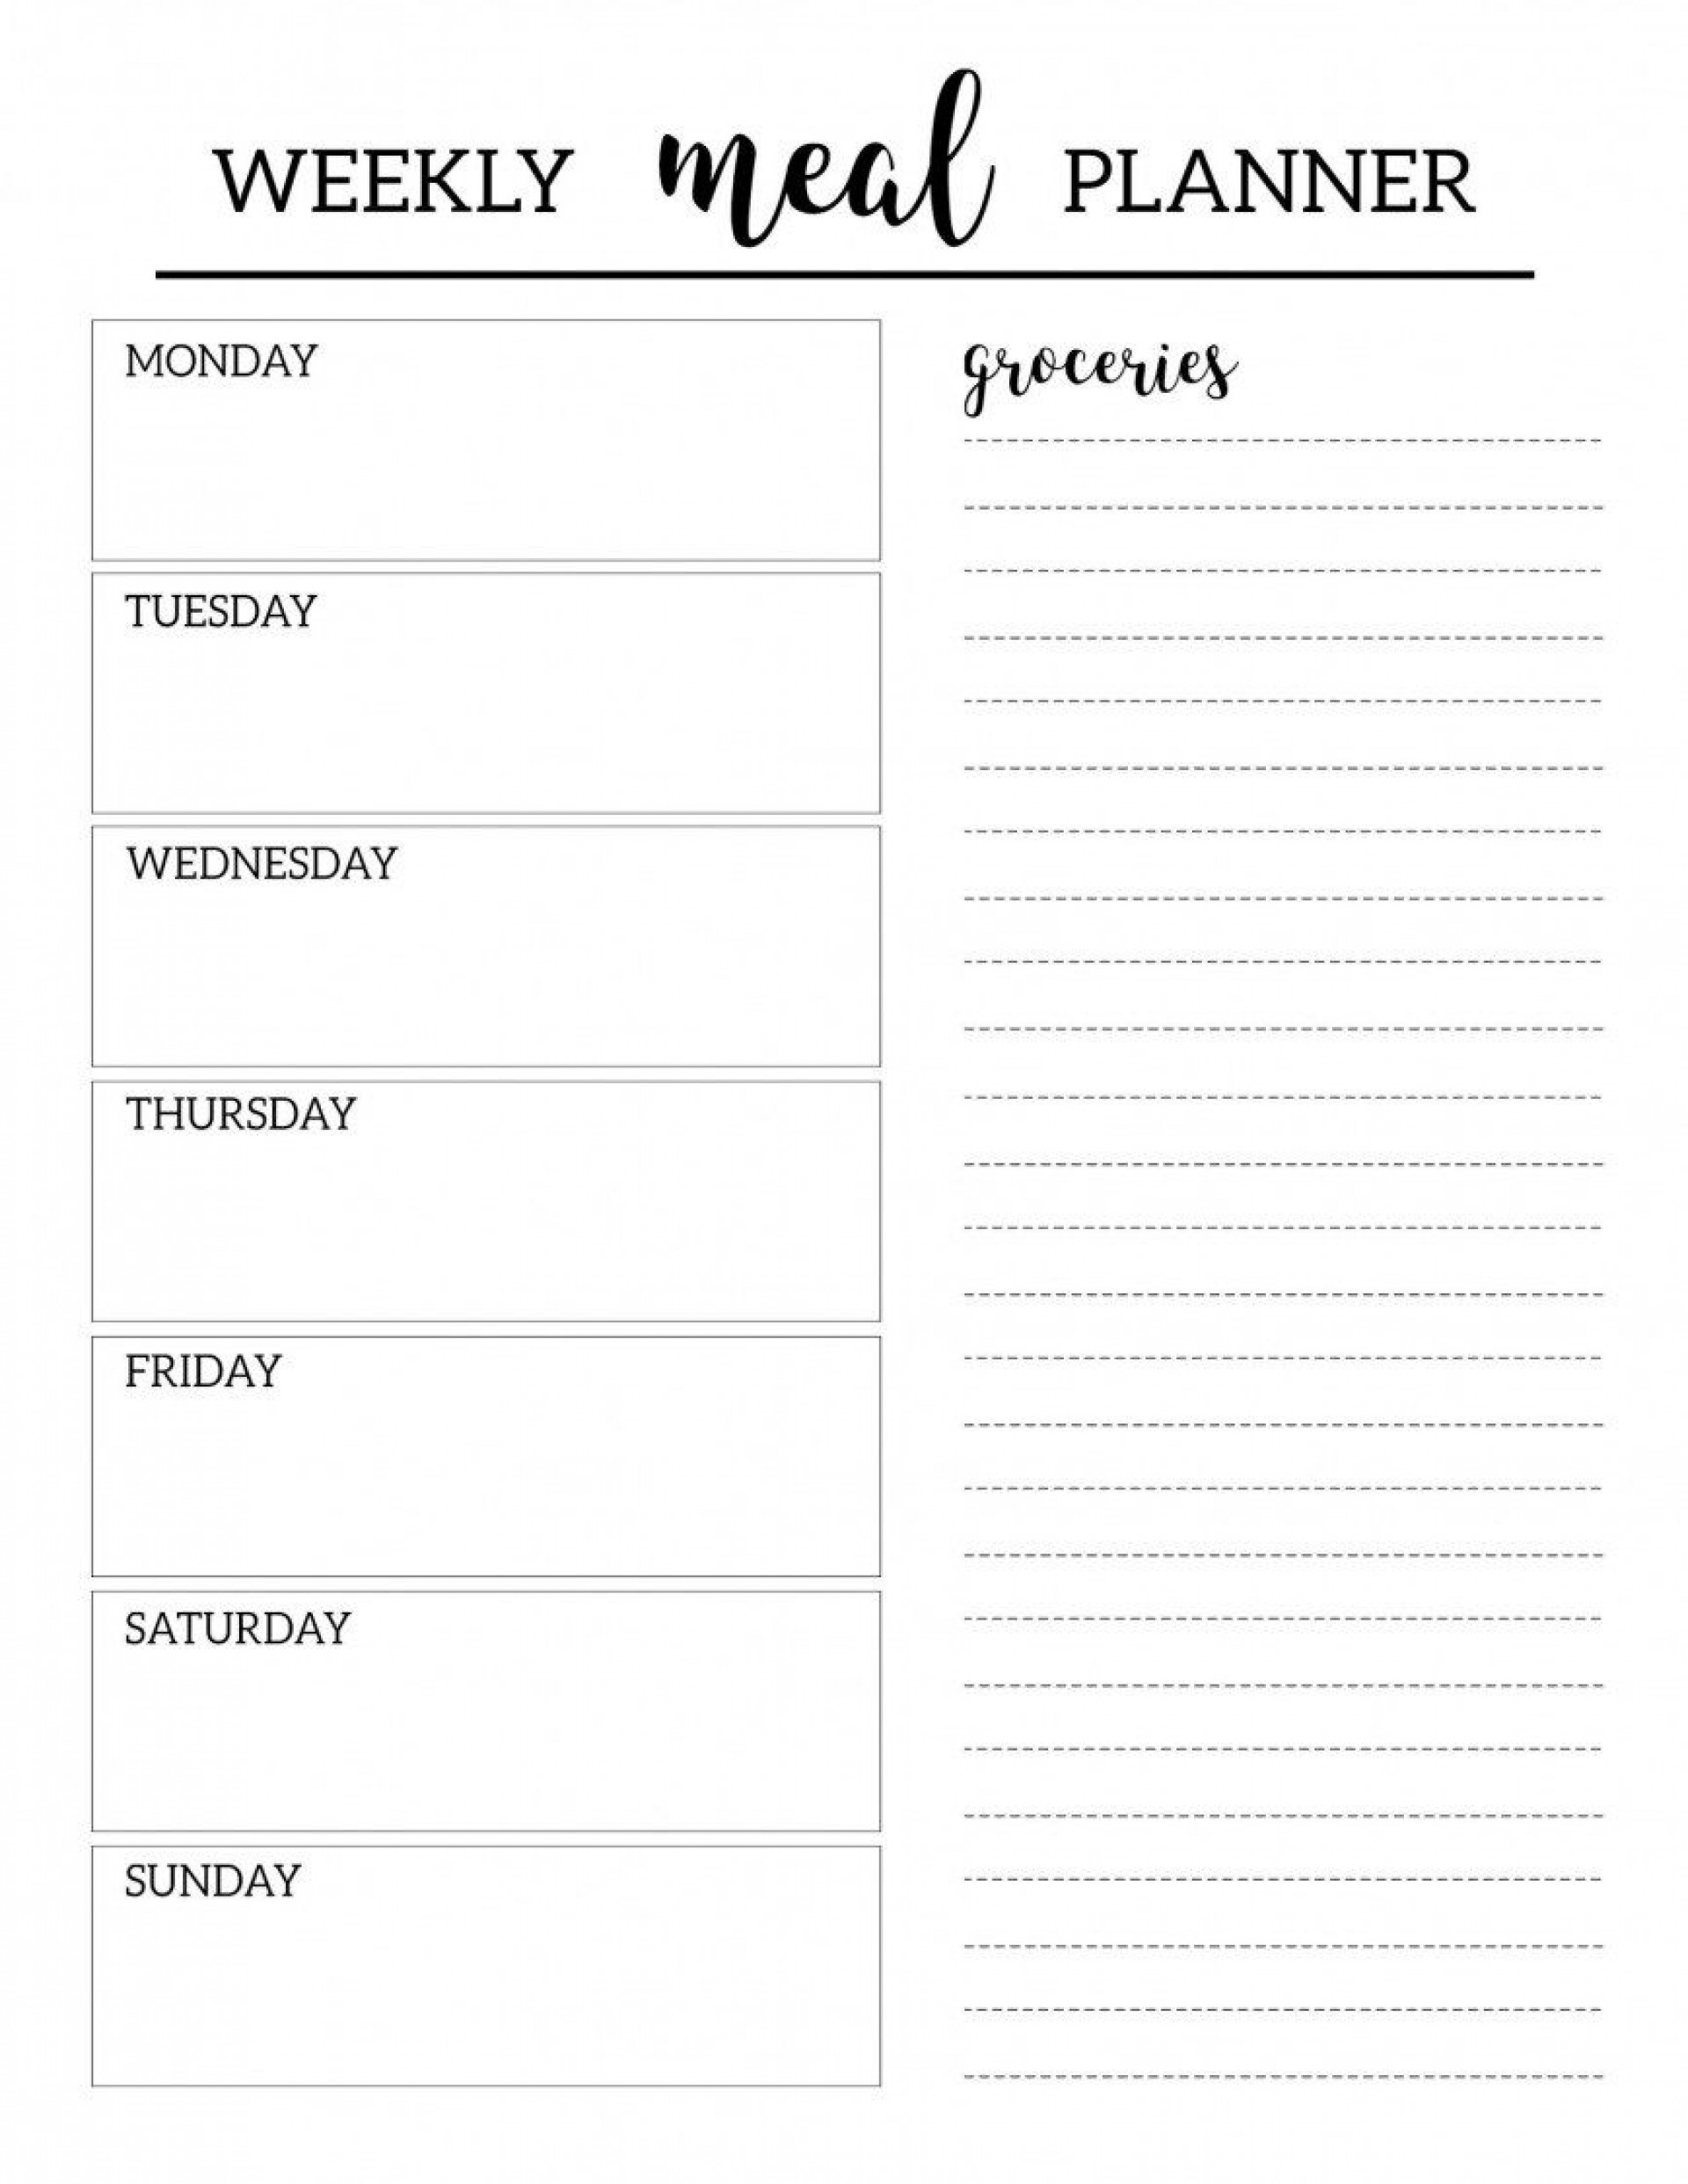 005 Striking Weekly Meal Plan Template App High Resolution  Apple Page1920